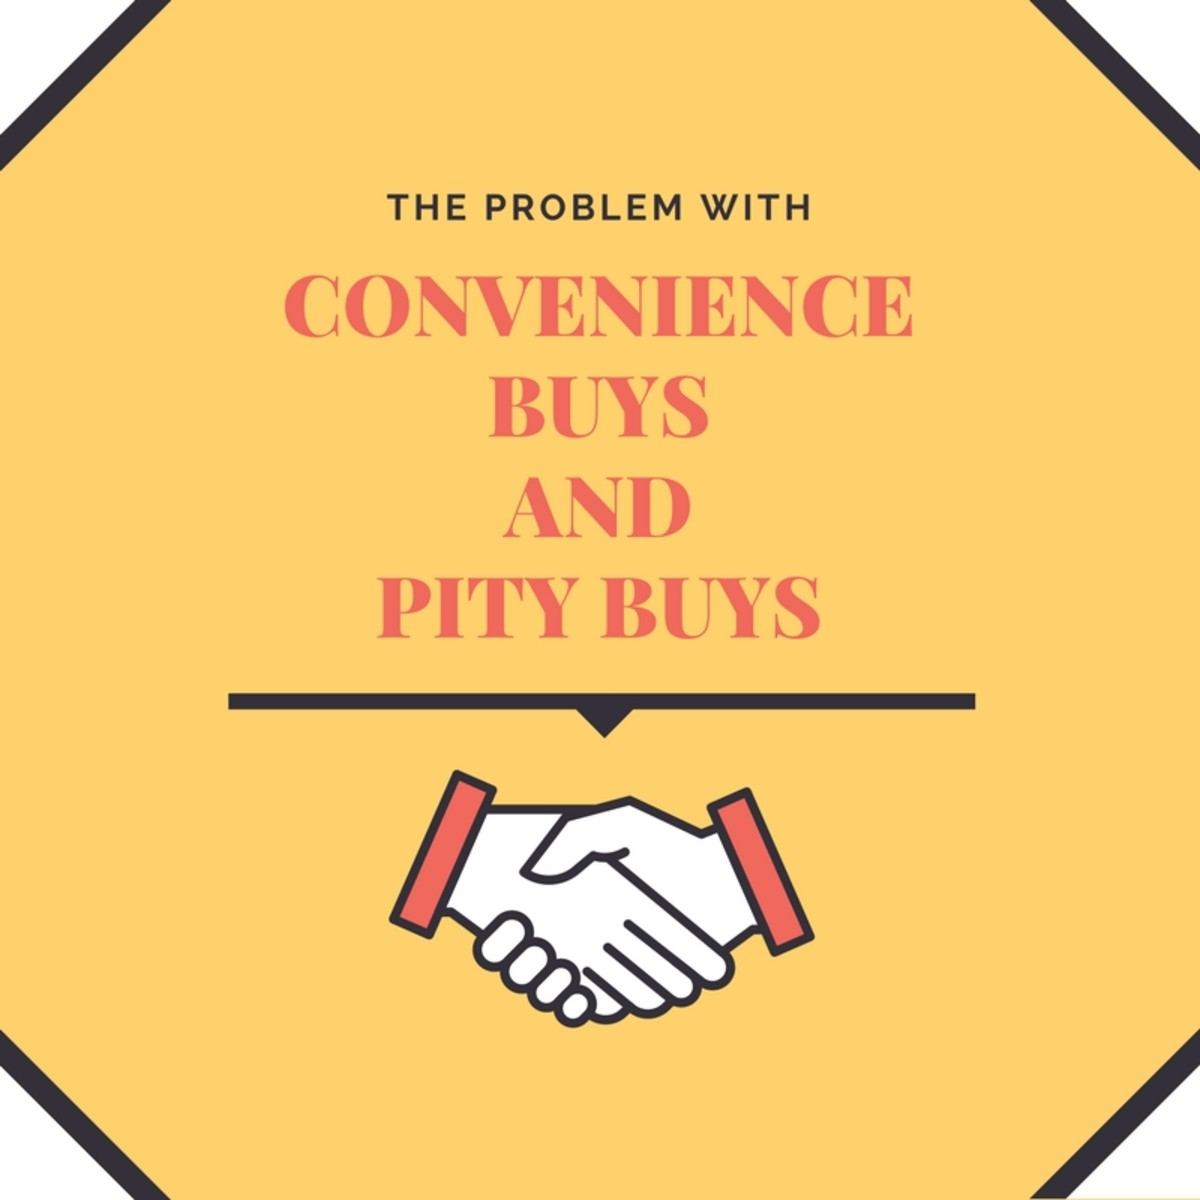 """Sometimes, the """"know, like, and trust"""" factor is actually detrimental to sales. Explore the negative aspects of pity buys and convenience buys."""